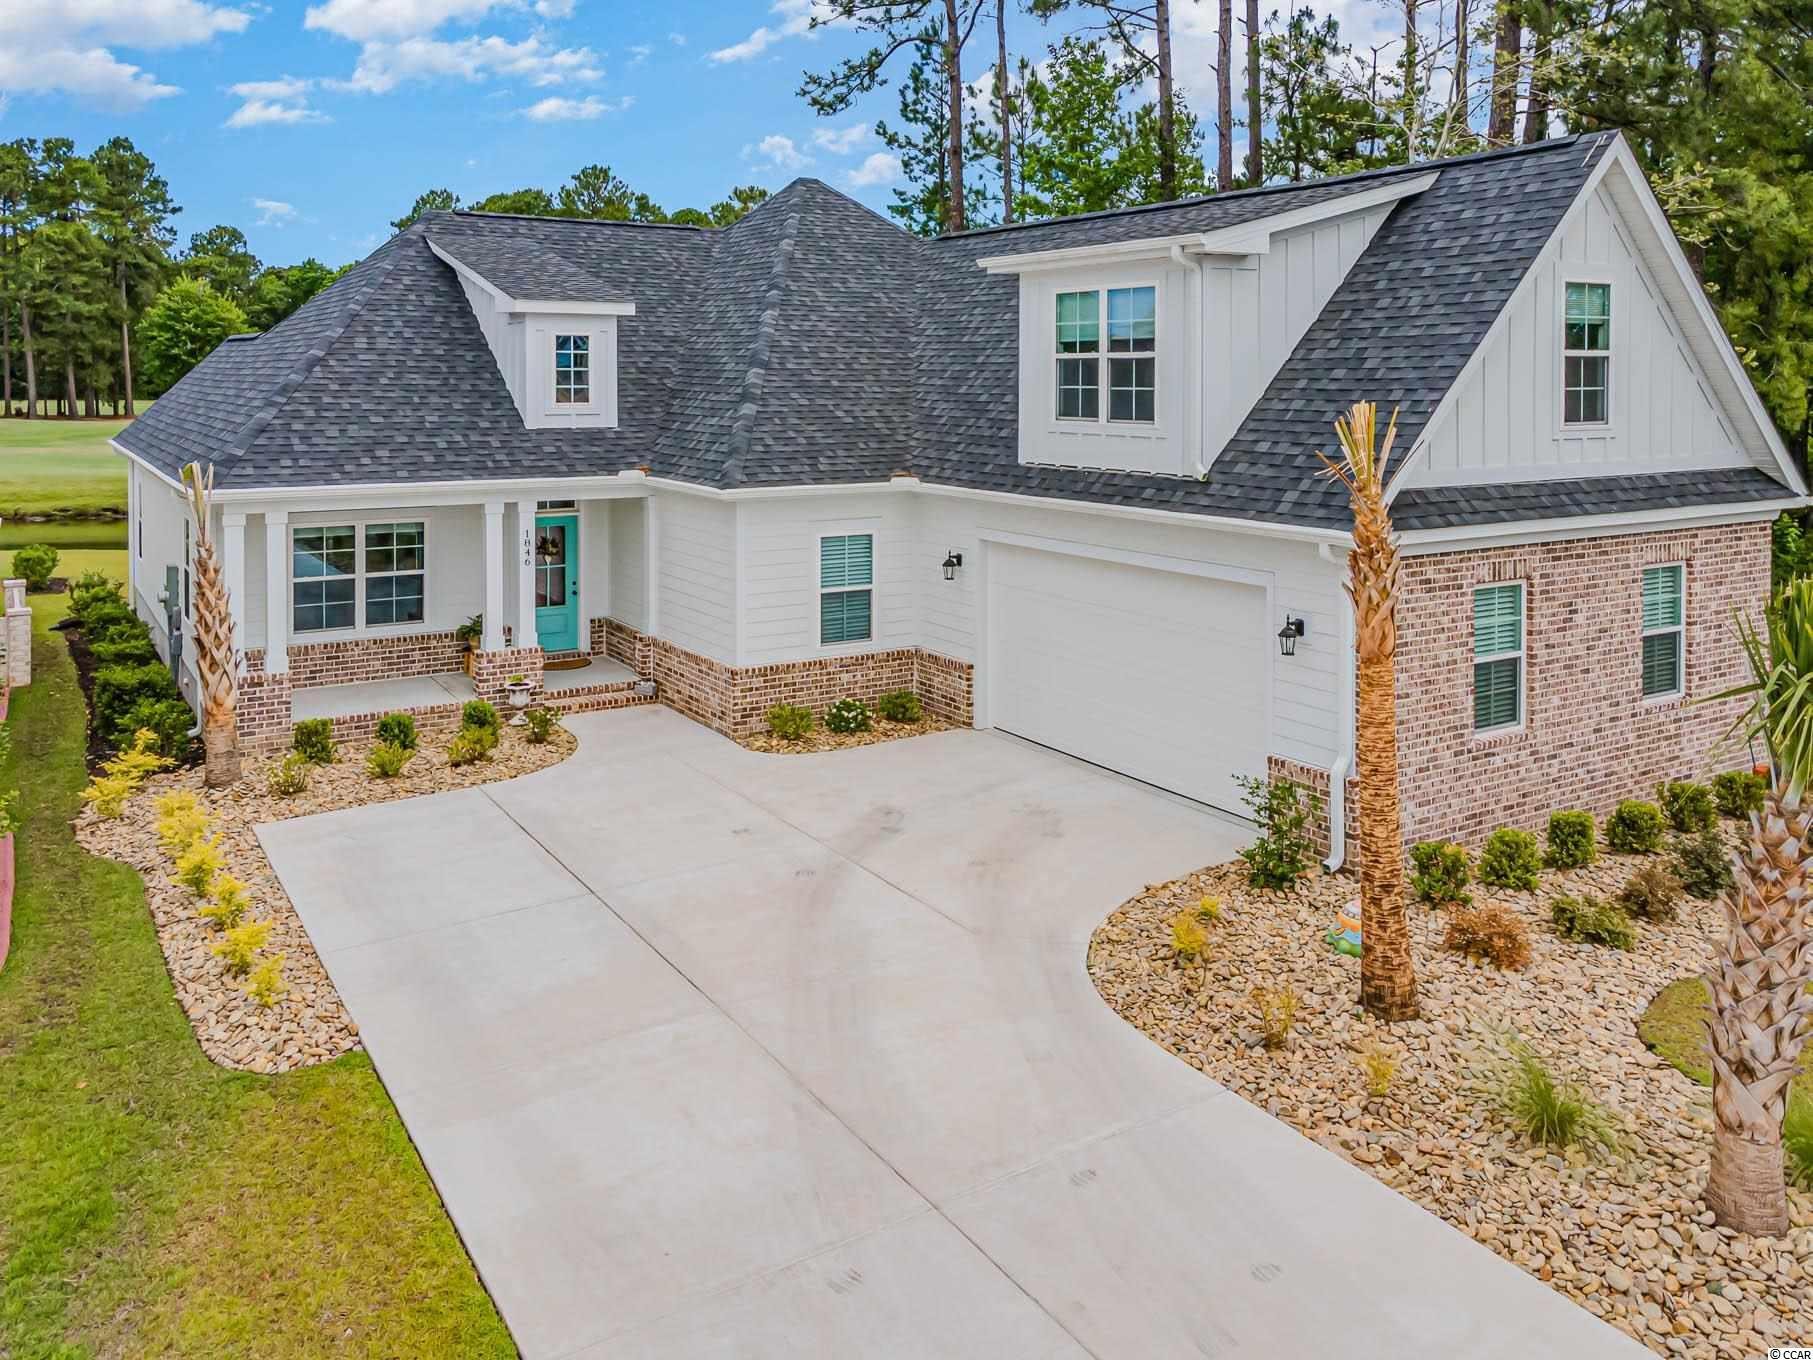 Immaculate custom-built home in Wild Wing Plantation by Richardson Custom Homes! This quality-built, luxury home boasts many features and is close to the beach. Entering the home, you will notice all the custom features,  PRYZM rigid core floors by Armstrong Flooring, and on-trend, coordinated lighting. The entryway and formal dining room are accented with wainscoting panels that add a touch of elegance. Next, an open kitchen and living room floor plan with exquisite lines. The eat-in kitchen features complementary quartz countertops, a large working island, Samsung stainless steel appliances, a gas range and soft-closing cabinets. The living room has a coffered ceiling and gas fireplace with a shiplap accent. The sliding glass doors in the living room flood the space with natural light. Just outside is the patio, where you can enjoy your morning coffee looking out at the golf course and water views. The primary bedroom towards the back of the home offers the same golf course views. A shiplap accent wall and tray ceiling make a statement. The en-suite bath boasts a tiled shower with a rain showerhead, a dual vanity, and two walk-in closets. The other 2 bedrooms are tucked away towards the front of the home and offer privacy for guests. Relish in relaxation in the spacious, finished family room above the garage. This could serve as a home office, theater, or even home gym. Store your cars in the 2-car garage, which has a custom screen to enjoy breezy days. This home is a MUST SEE and has it all!   Wild Wing Plantation offers two award-winning golf courses, practice facility, pro-shop and restaurant. Amenities include 2 large pools, a hot tub, a child swimming station and waterslide, pickle ball/tennis courts, basketball courts, and a playground. The community is right off Highway 501 and close to endless shopping, dining, attractions and Coastal Carolina University. Square footage is approximate and not guaranteed. Buyers responsible for verification. New constructio